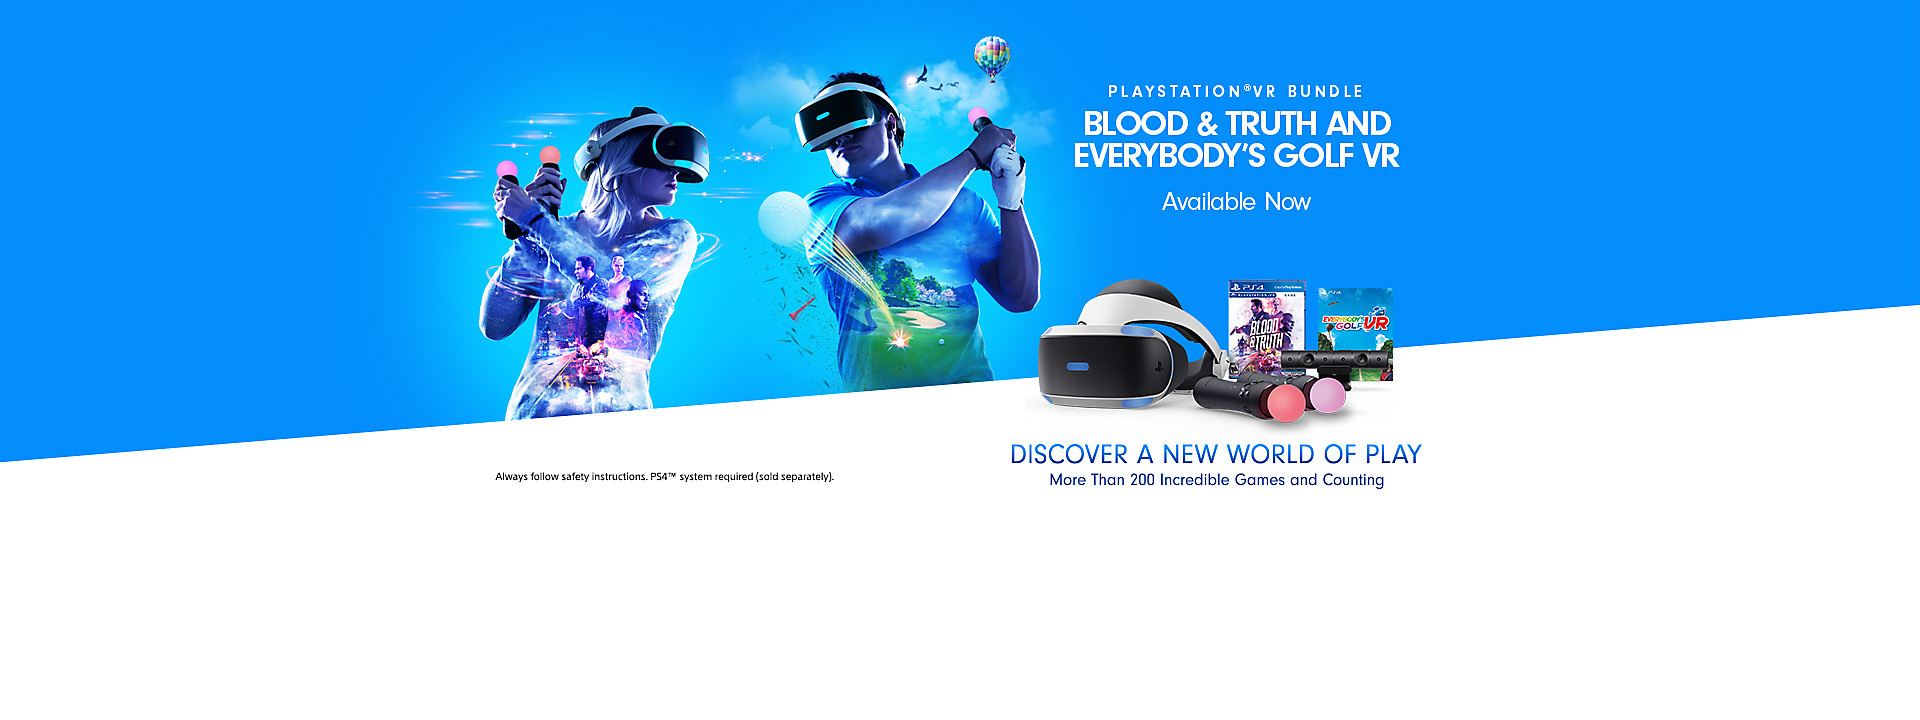 PlayStation VR Blood & Truth and Everybody's Golf VR Bundle - Available Now